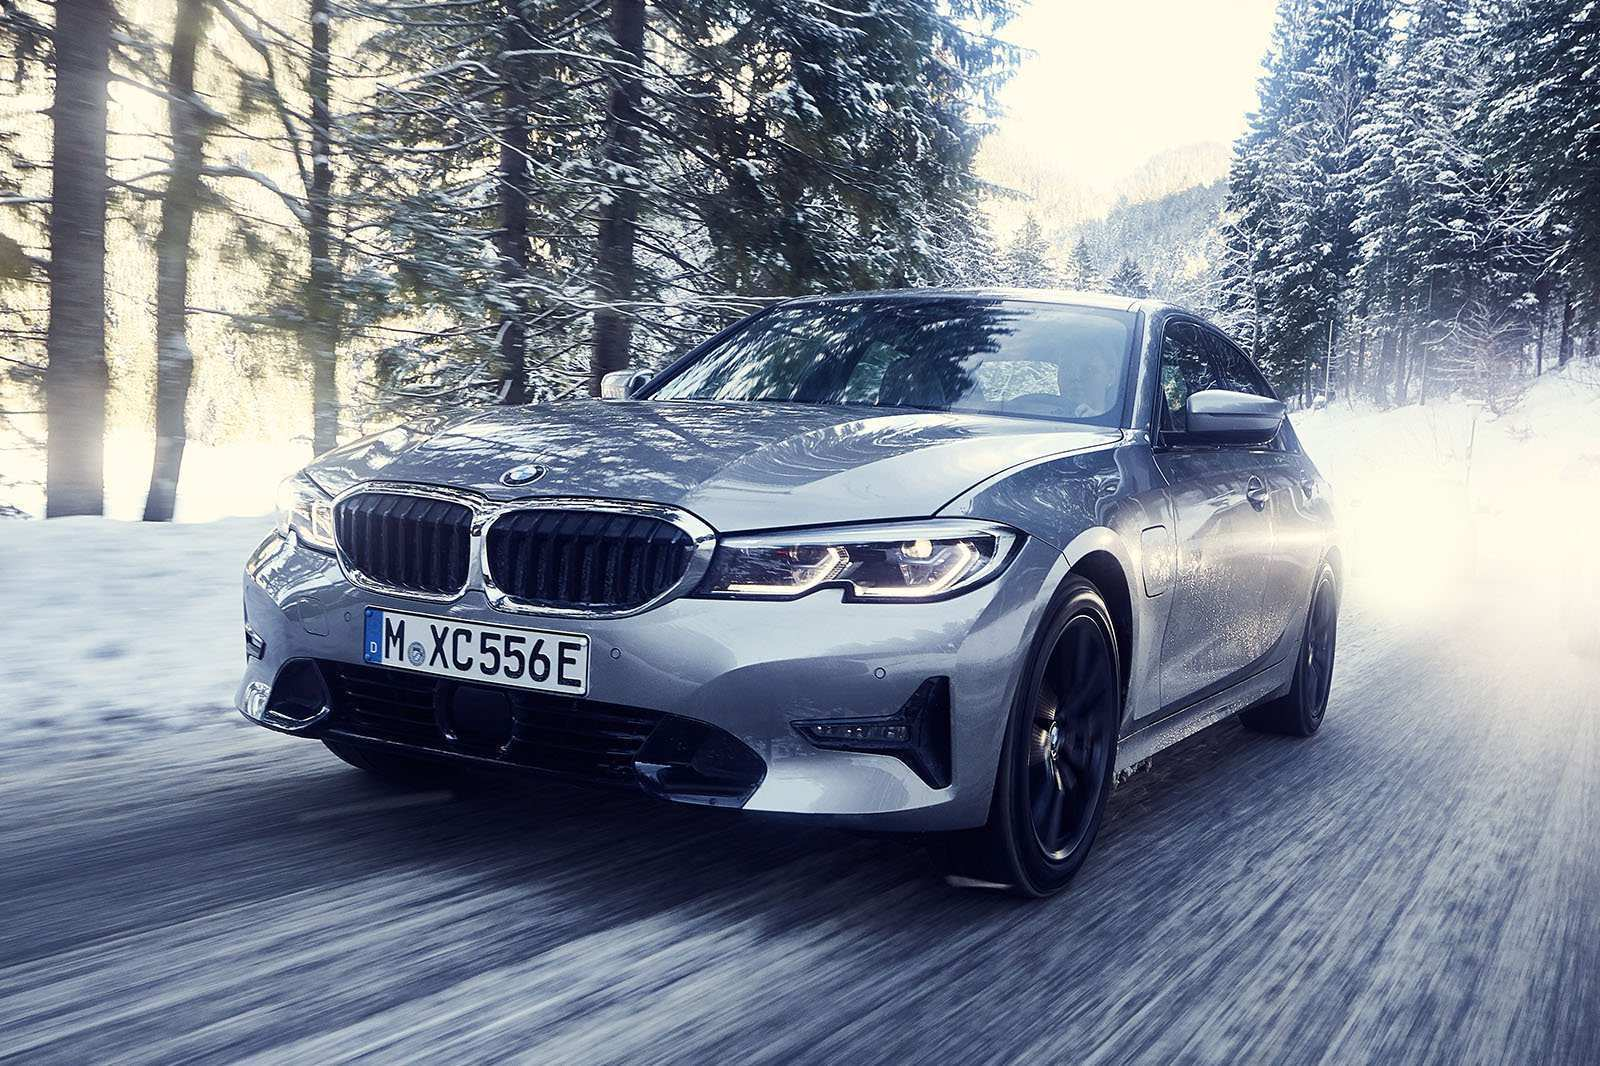 28 All New 2019 BMW 3 Series Edrive Phev Price Design And Review